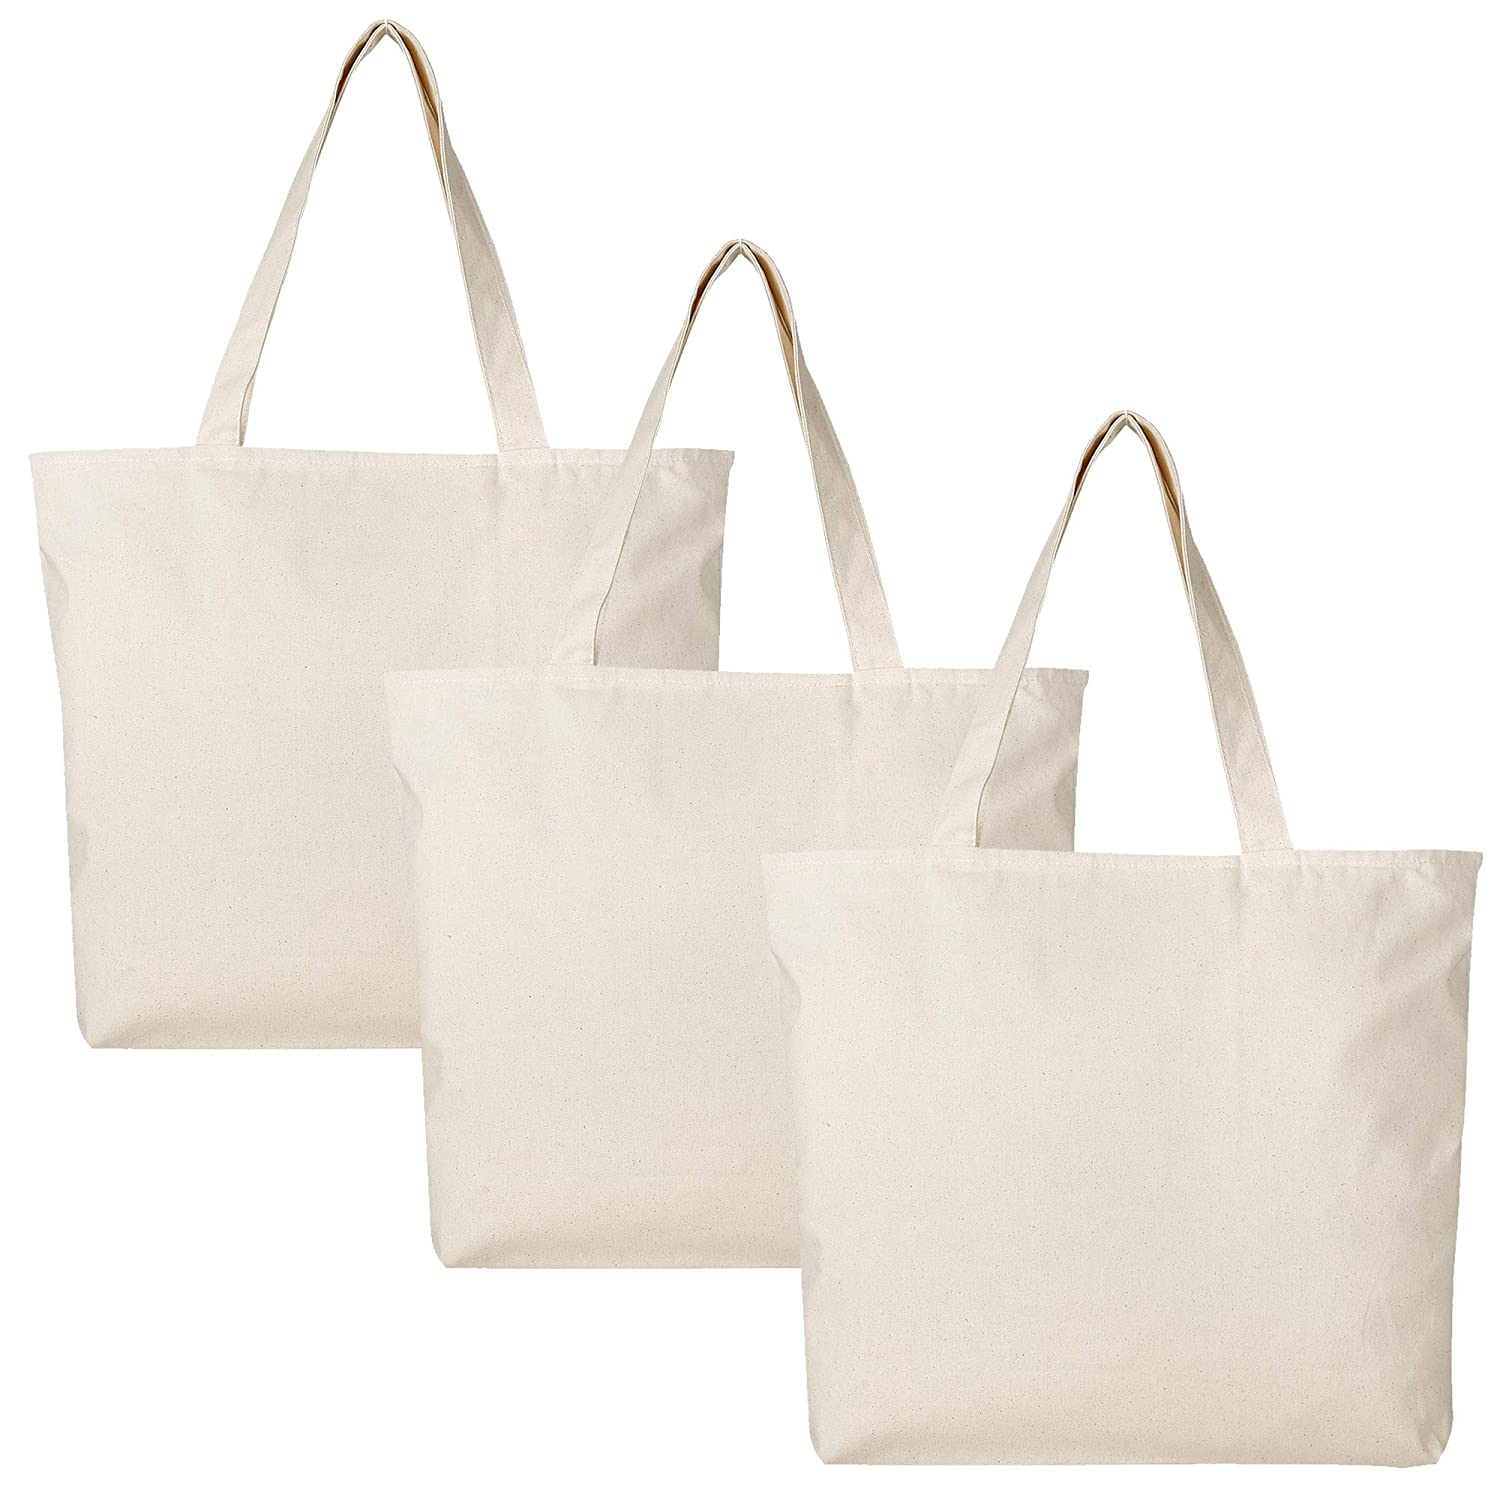 e21437b86b68 PACK OF 3 Large Heavy Canvas Plain Tote Bags, with Top and Inside Zipper  Closure by BagzDepot (Natural)